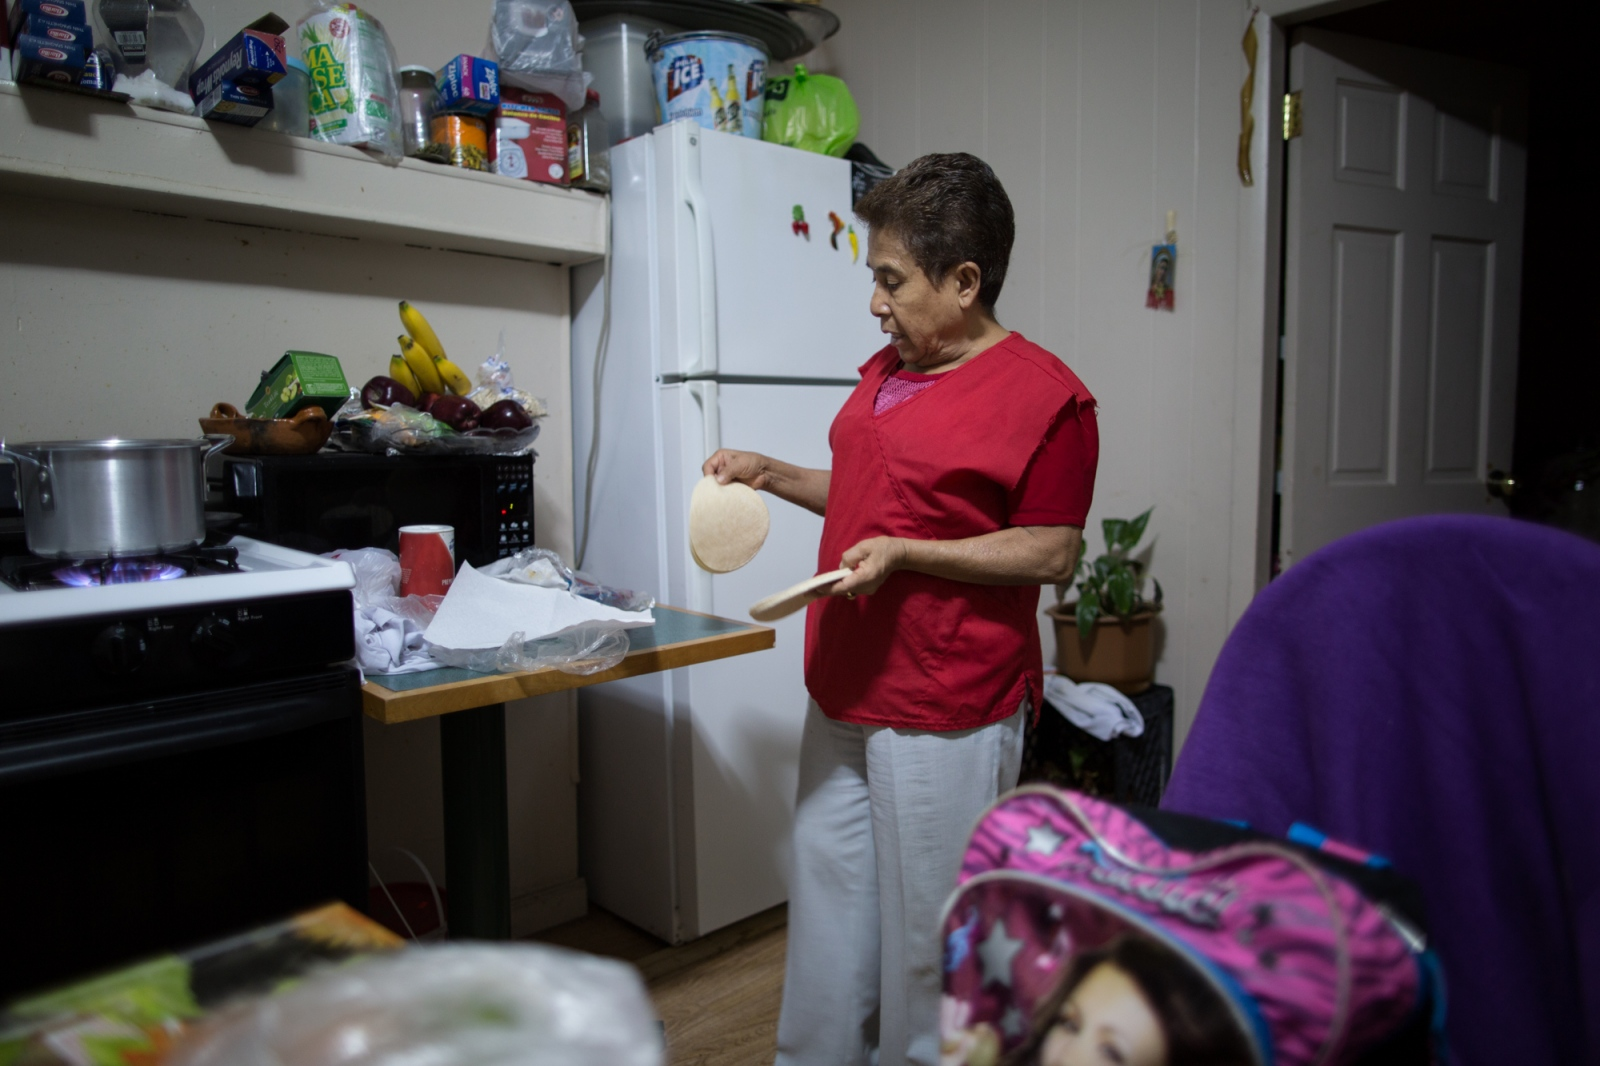 Gisela cooking a green mole at her house on 45th Street in Sunset Park, Brooklyn, New York, 2016.